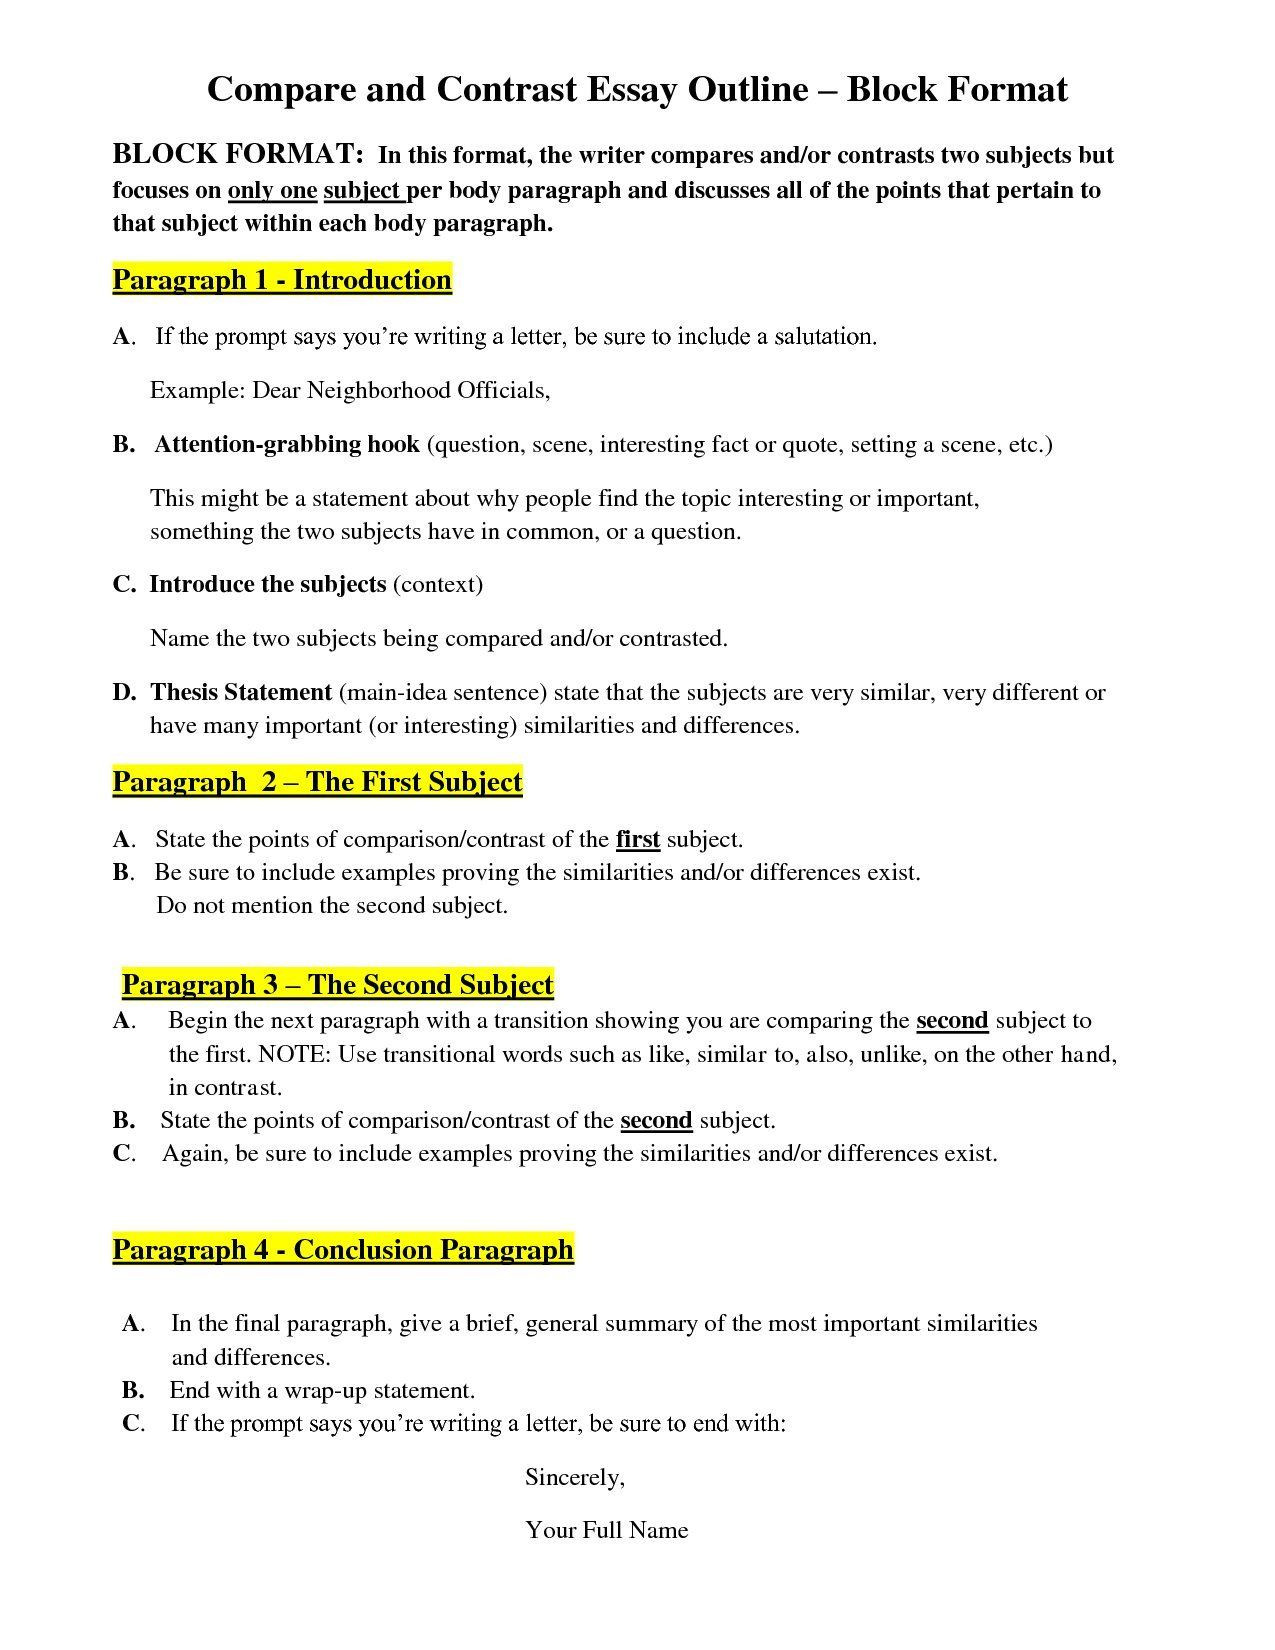 Texting while driving essay outline